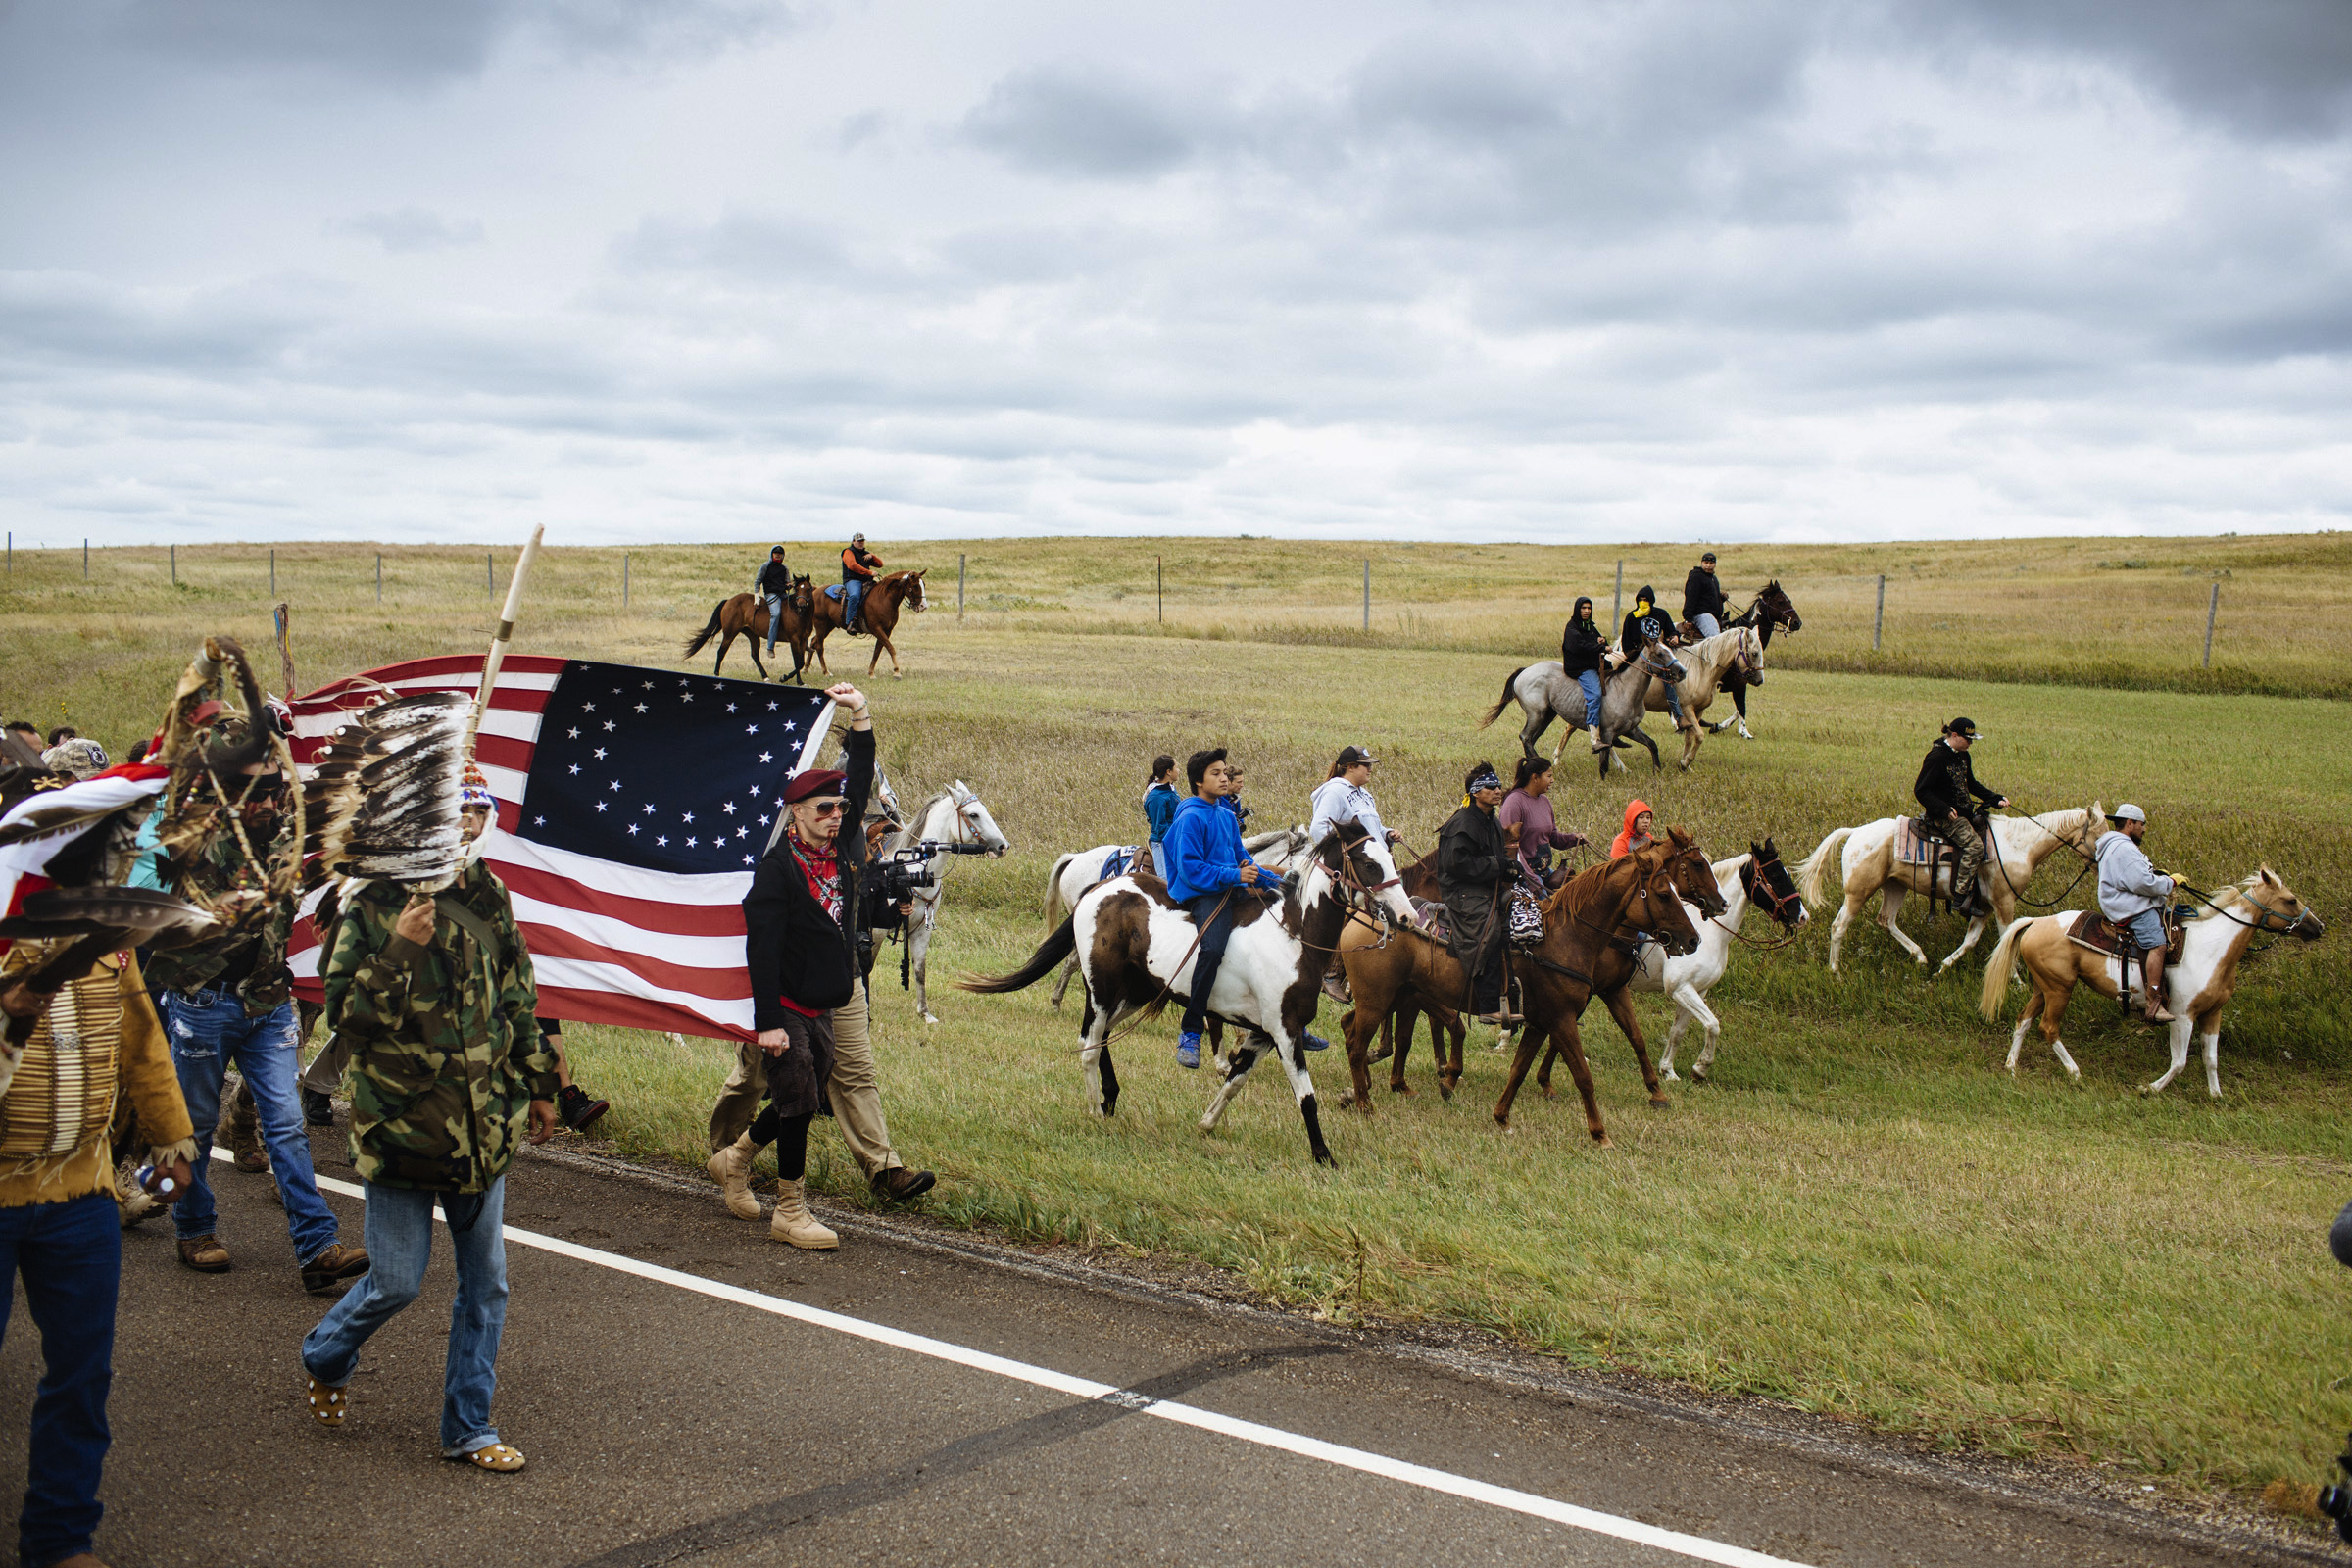 Horses lead a march of 700 protestors North along Highway 1806 in Morton County, North Dakota on Friday, Sept. 9, 2016. The march covered the 2 miles between the Oceti Sakowin Camp and a sacred burial site which is slated to be destroyed by the Dakota Access Pipeline. (Photo by Angus Mordant/Groundtruth)